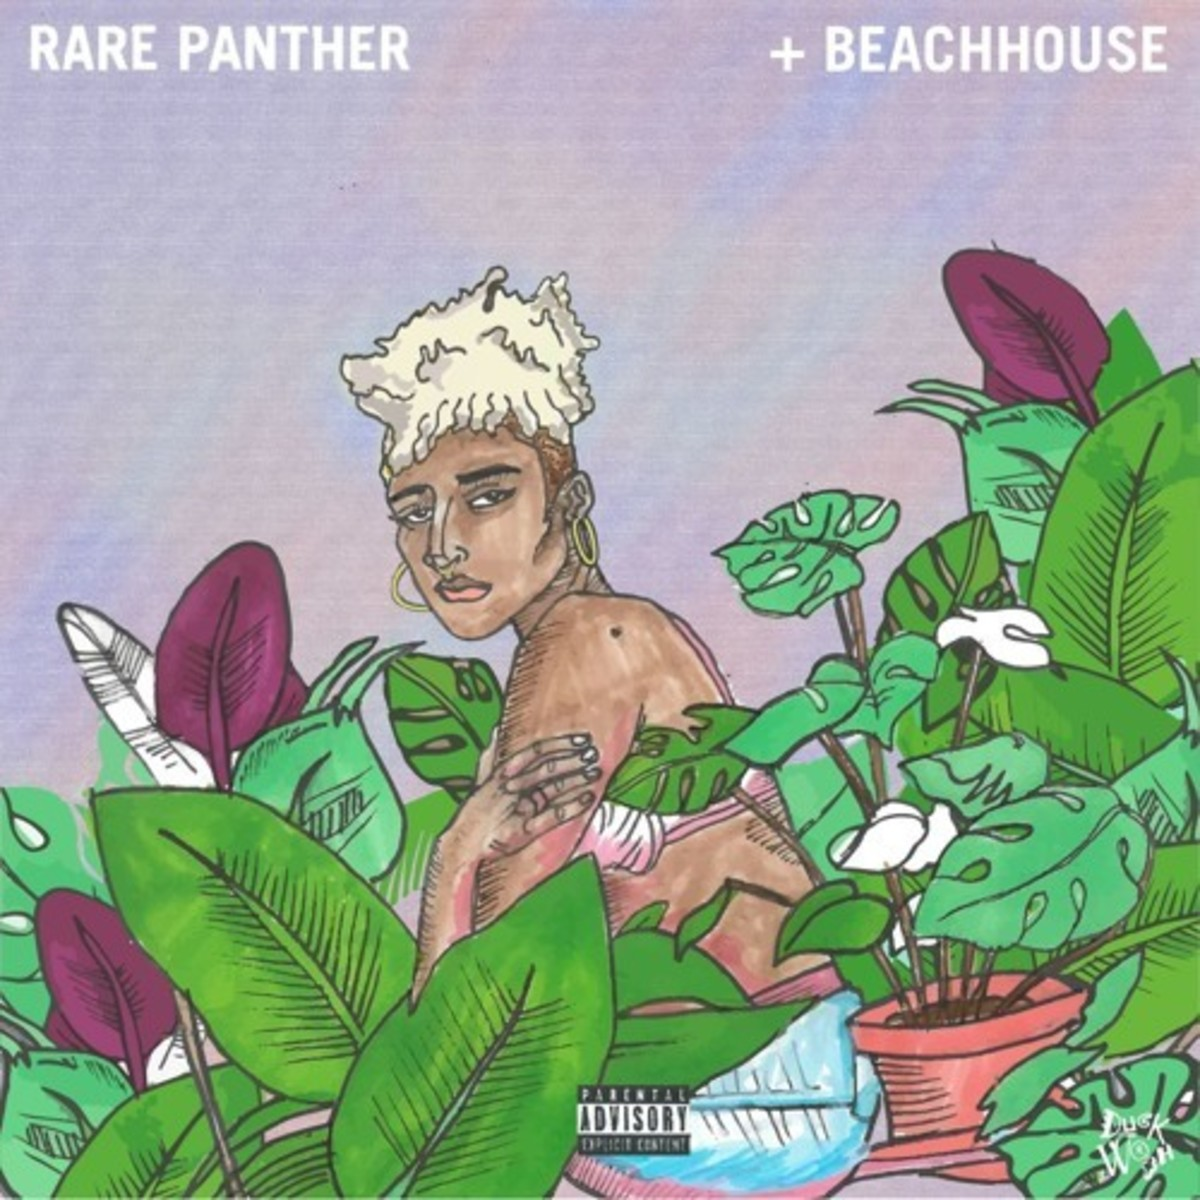 duckwrth-rarepanther-beachouse.jpg